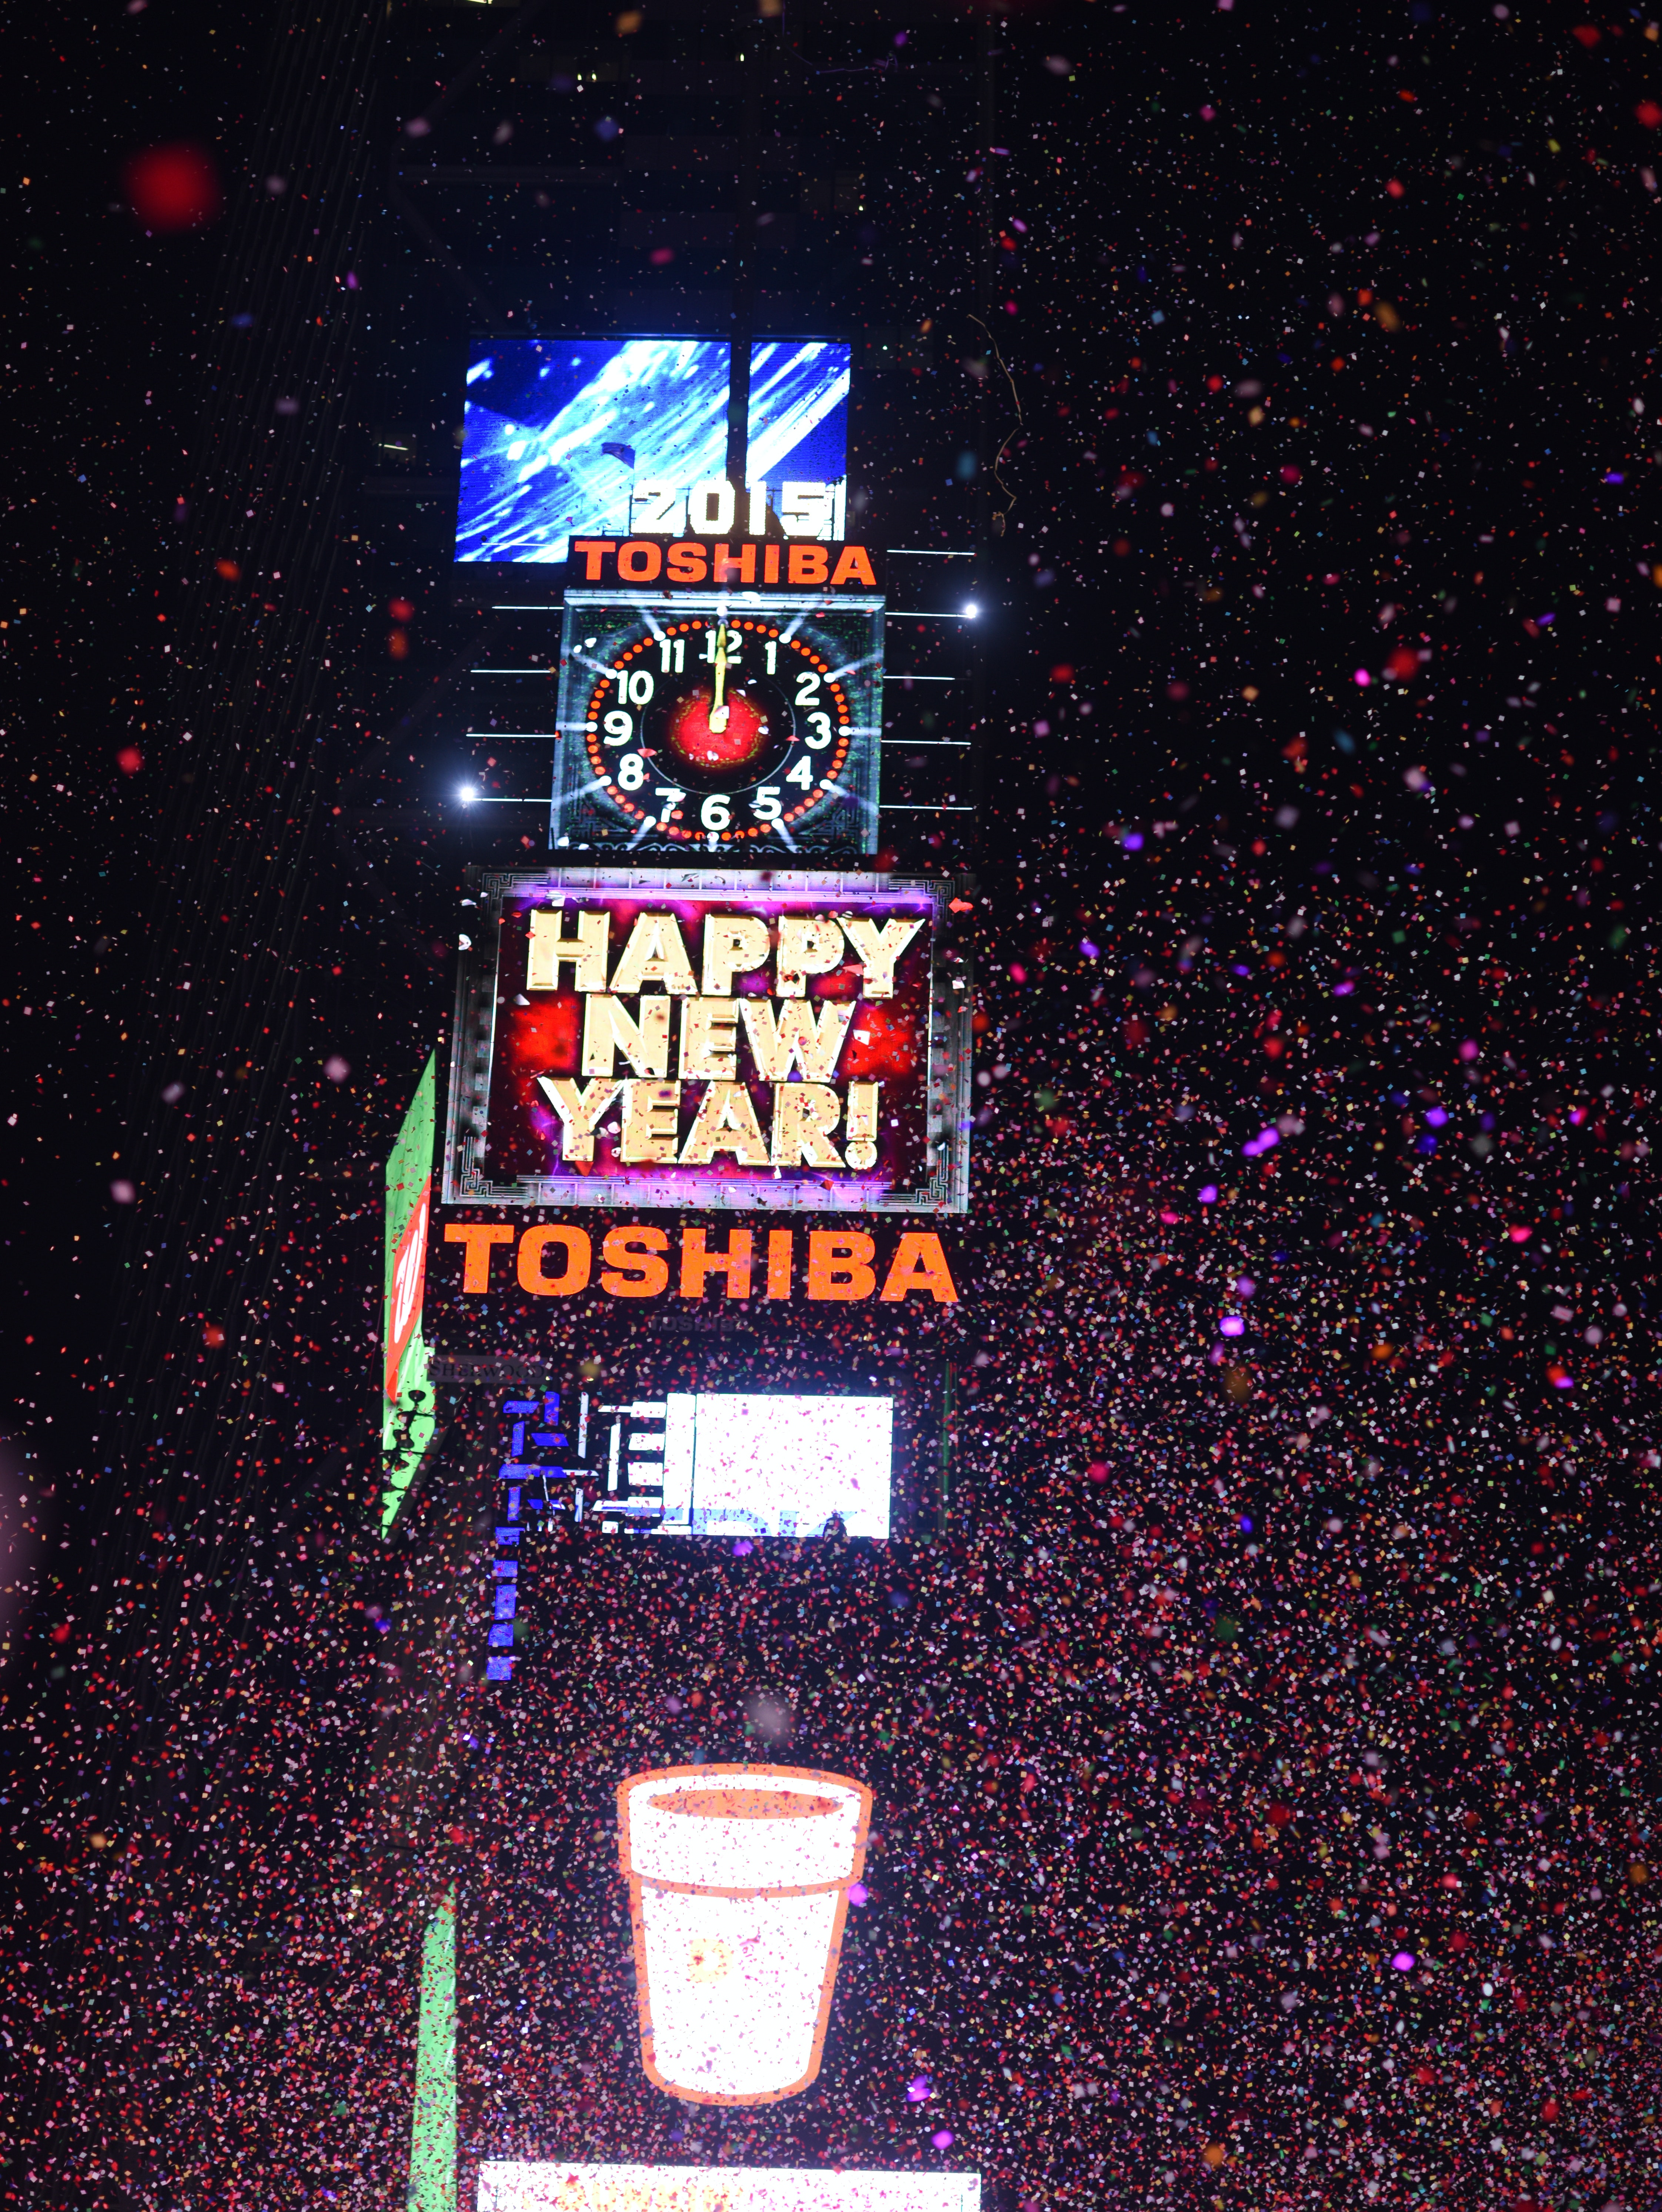 NEW YORK, NY - JANUARY 1:  People cheer as the ball drops at midnight in Times Square on January 1, 2015 in New York City. An estimated one million people from around the world are expected to pack Times Square to ring in 2015. (Photo by Andrew Theodorakis/Getty Images)